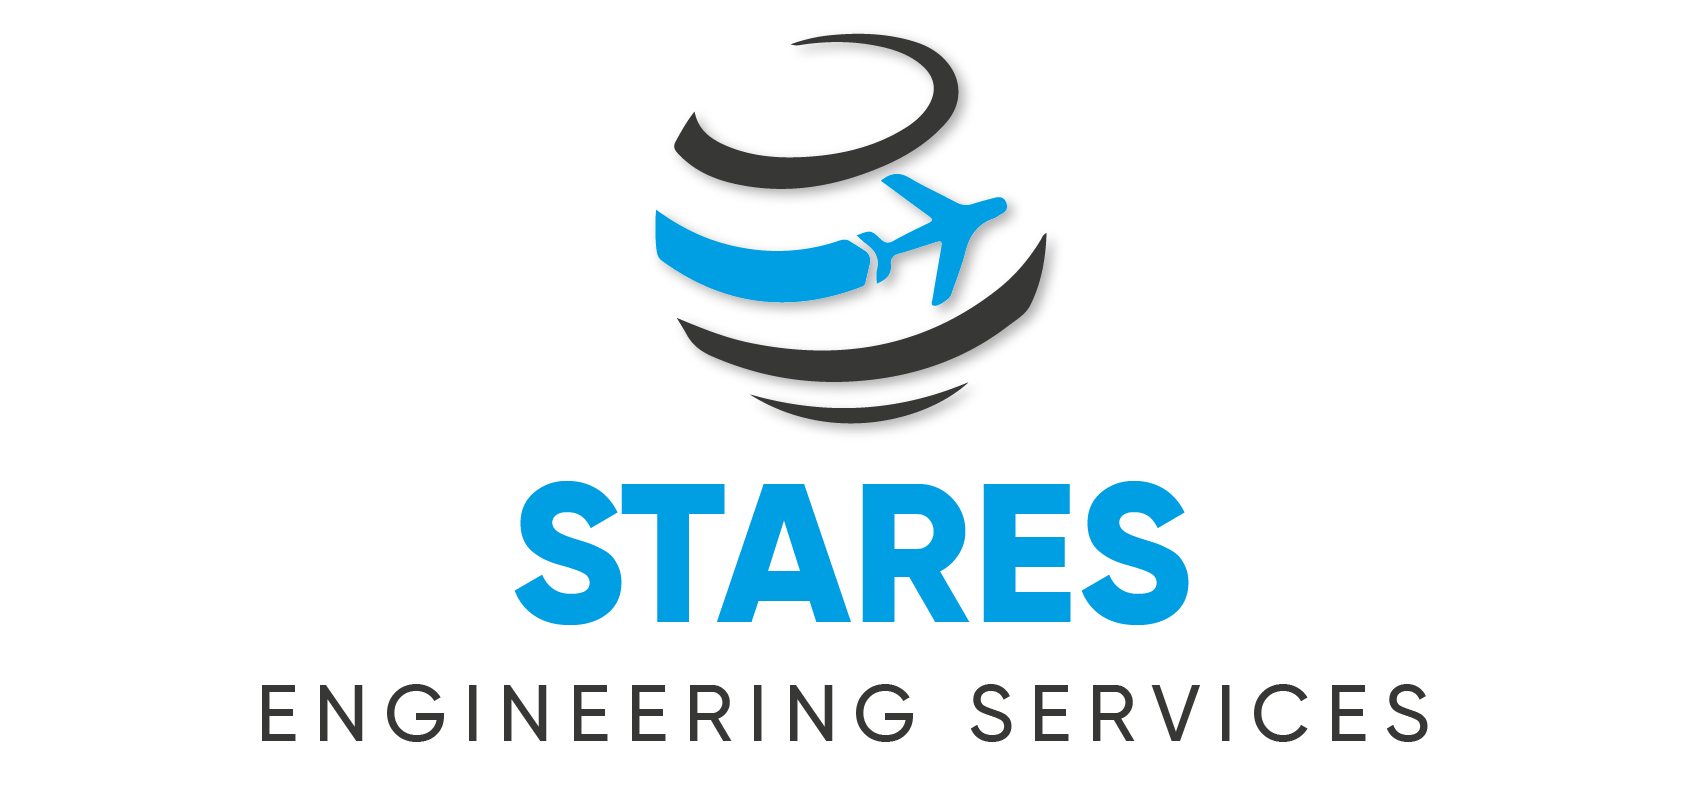 Stares Engineering Services